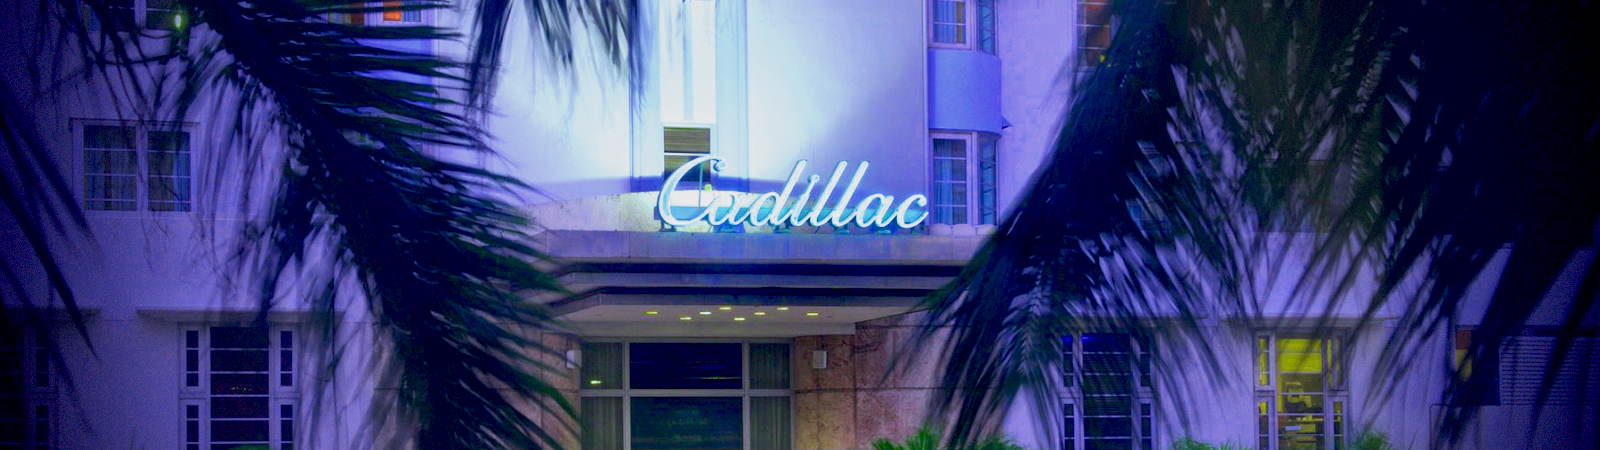 The Cadillac Hotel Autograph Collection